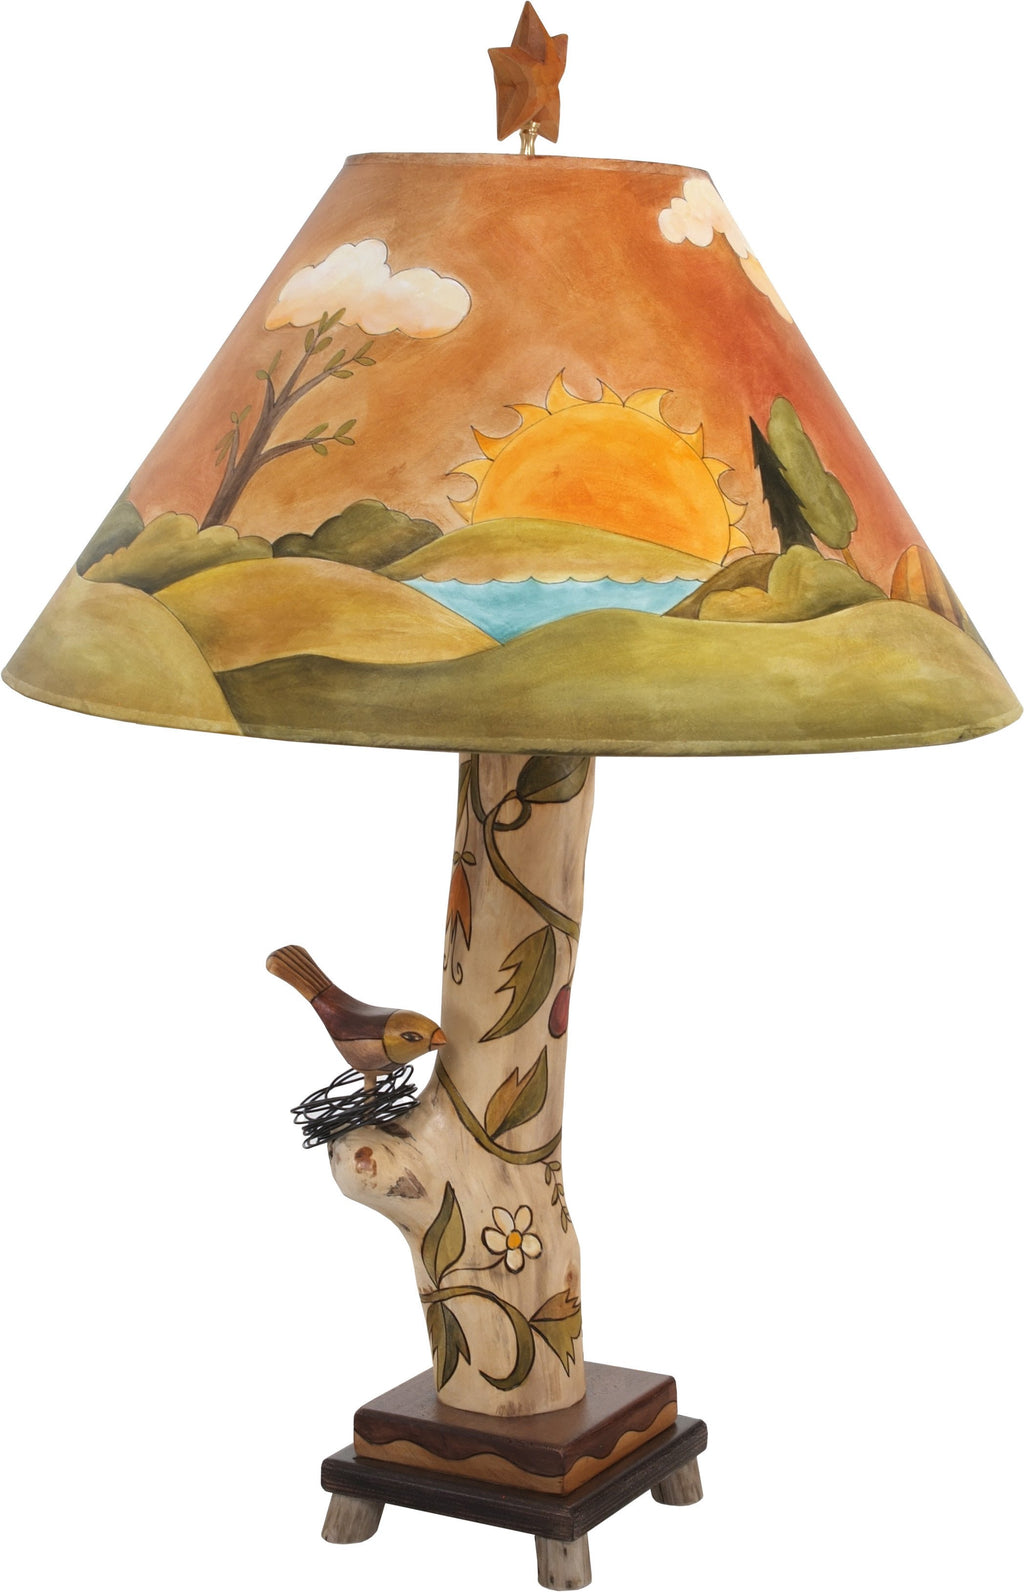 Log Table Lamp –  Hand painted landscape table lamp with vine motifs and bird